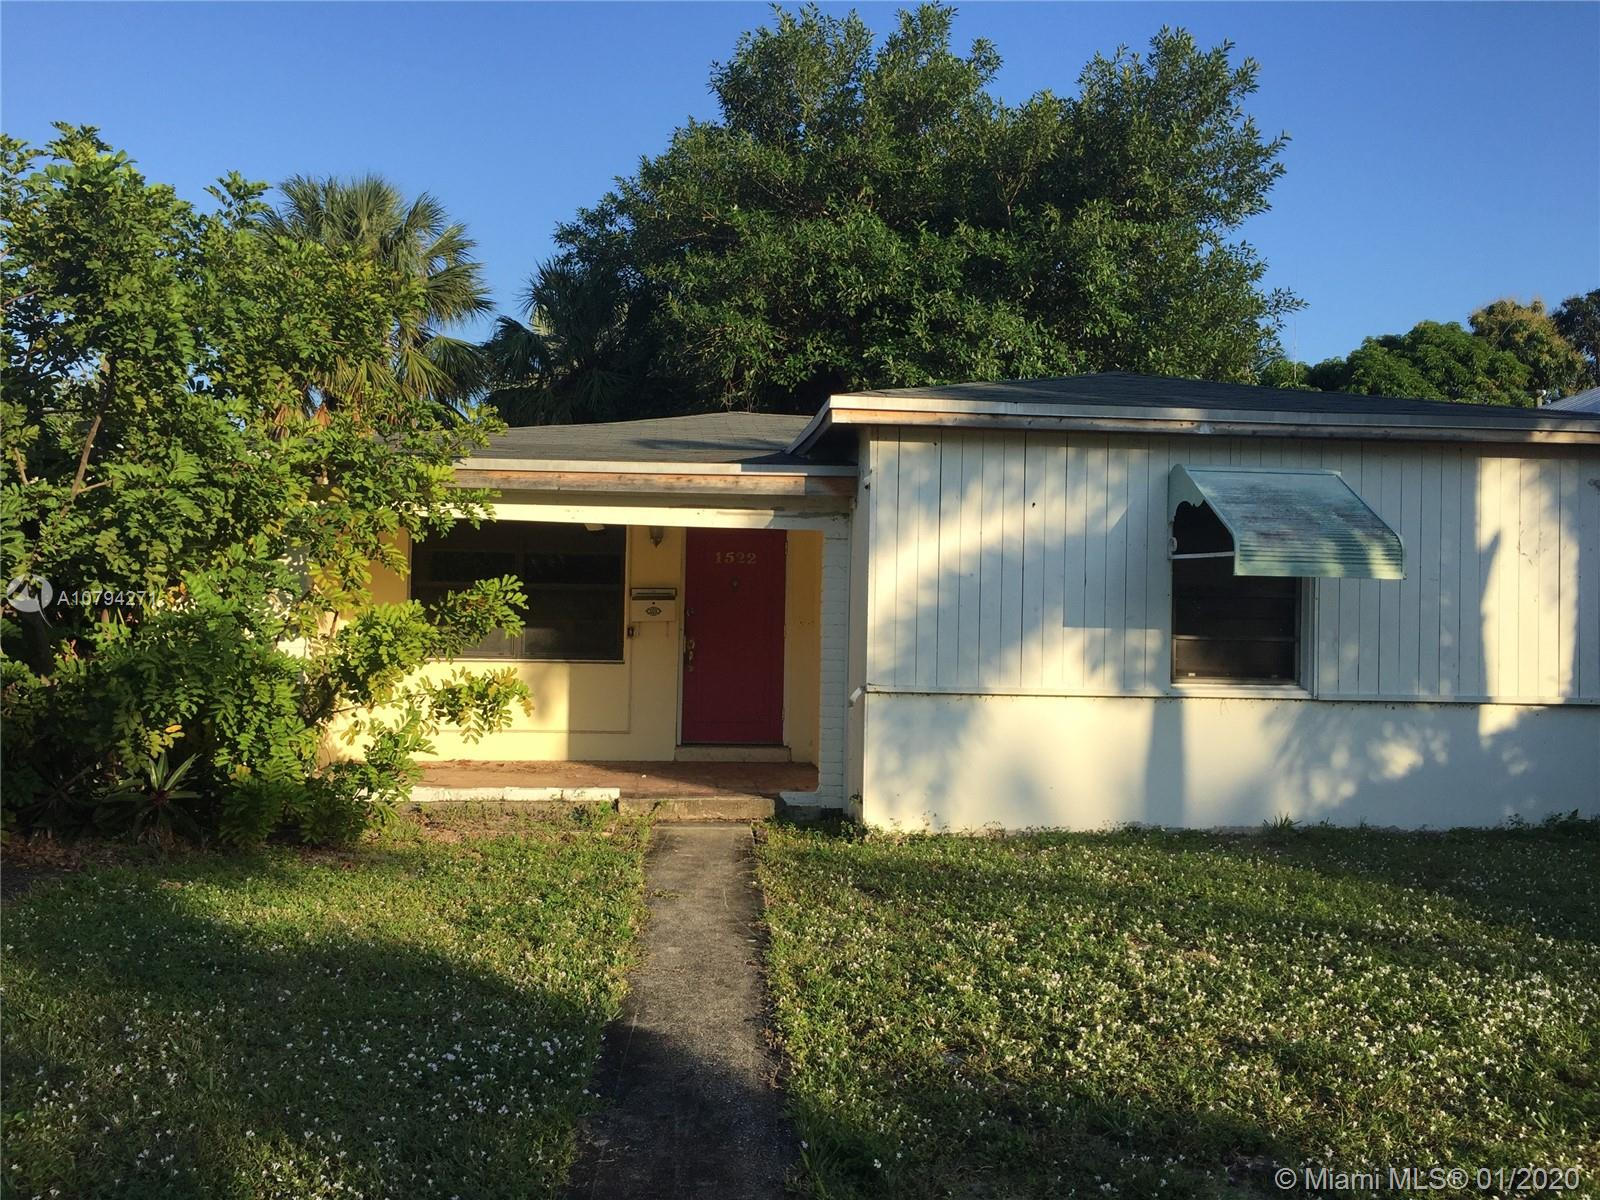 1522 NE 17th Way, Fort Lauderdale, FL 33304 - Fort Lauderdale, FL real estate listing